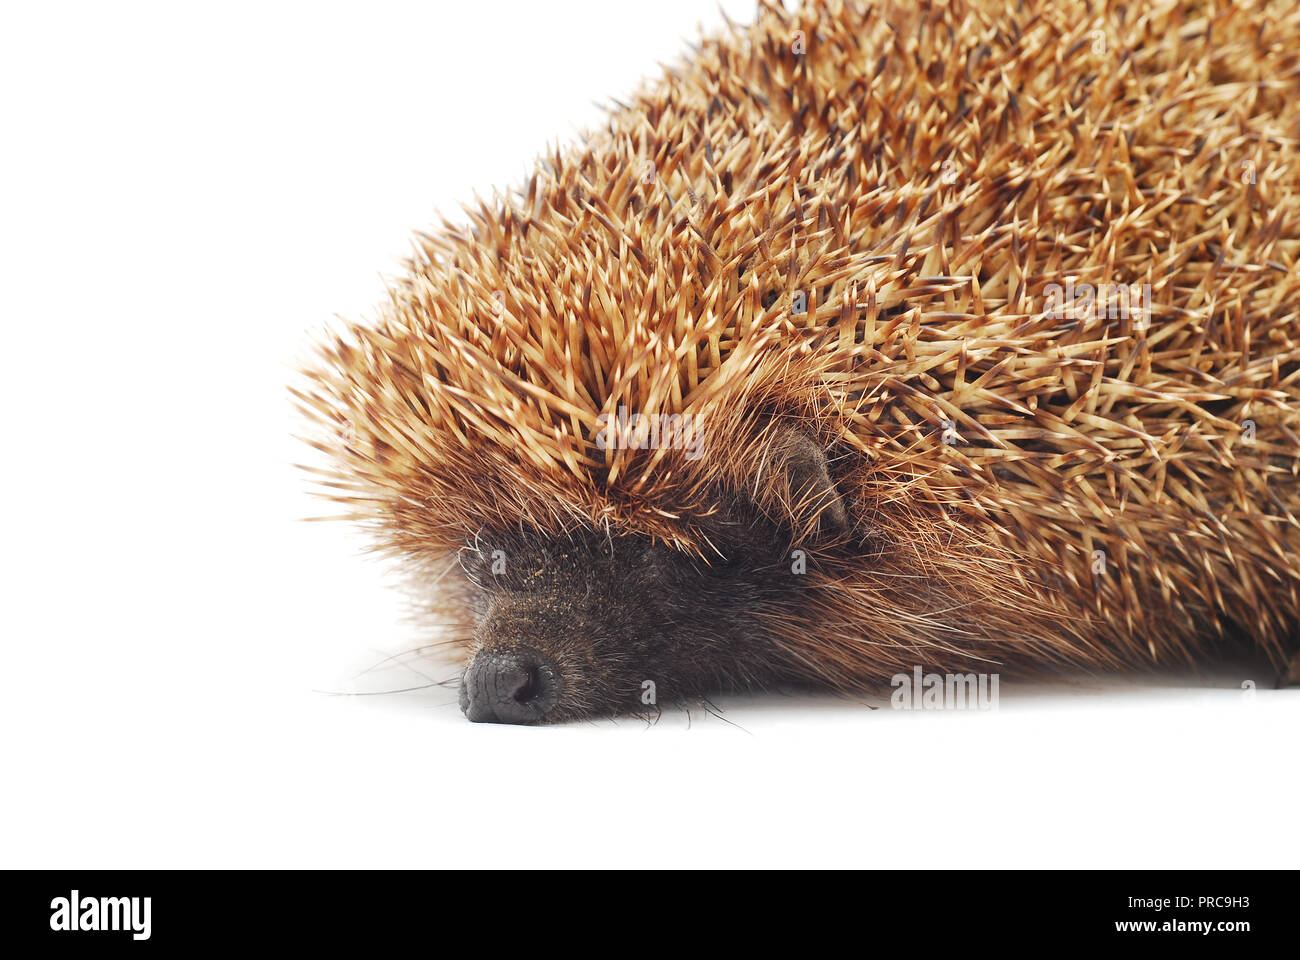 hedgehog over a white background - Stock Image